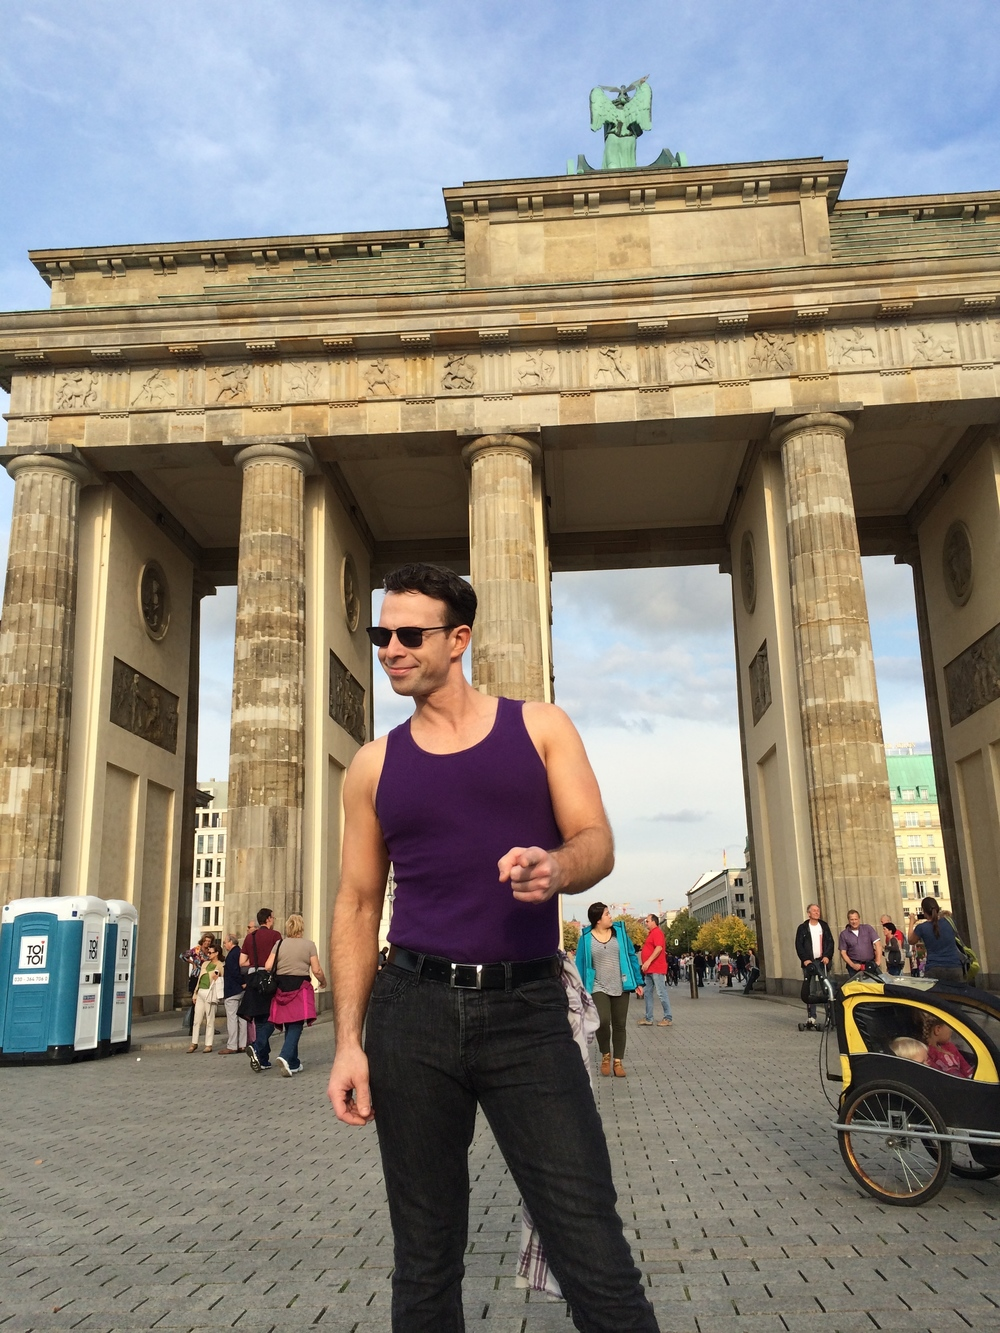 Shawn striking a pose in Berlin